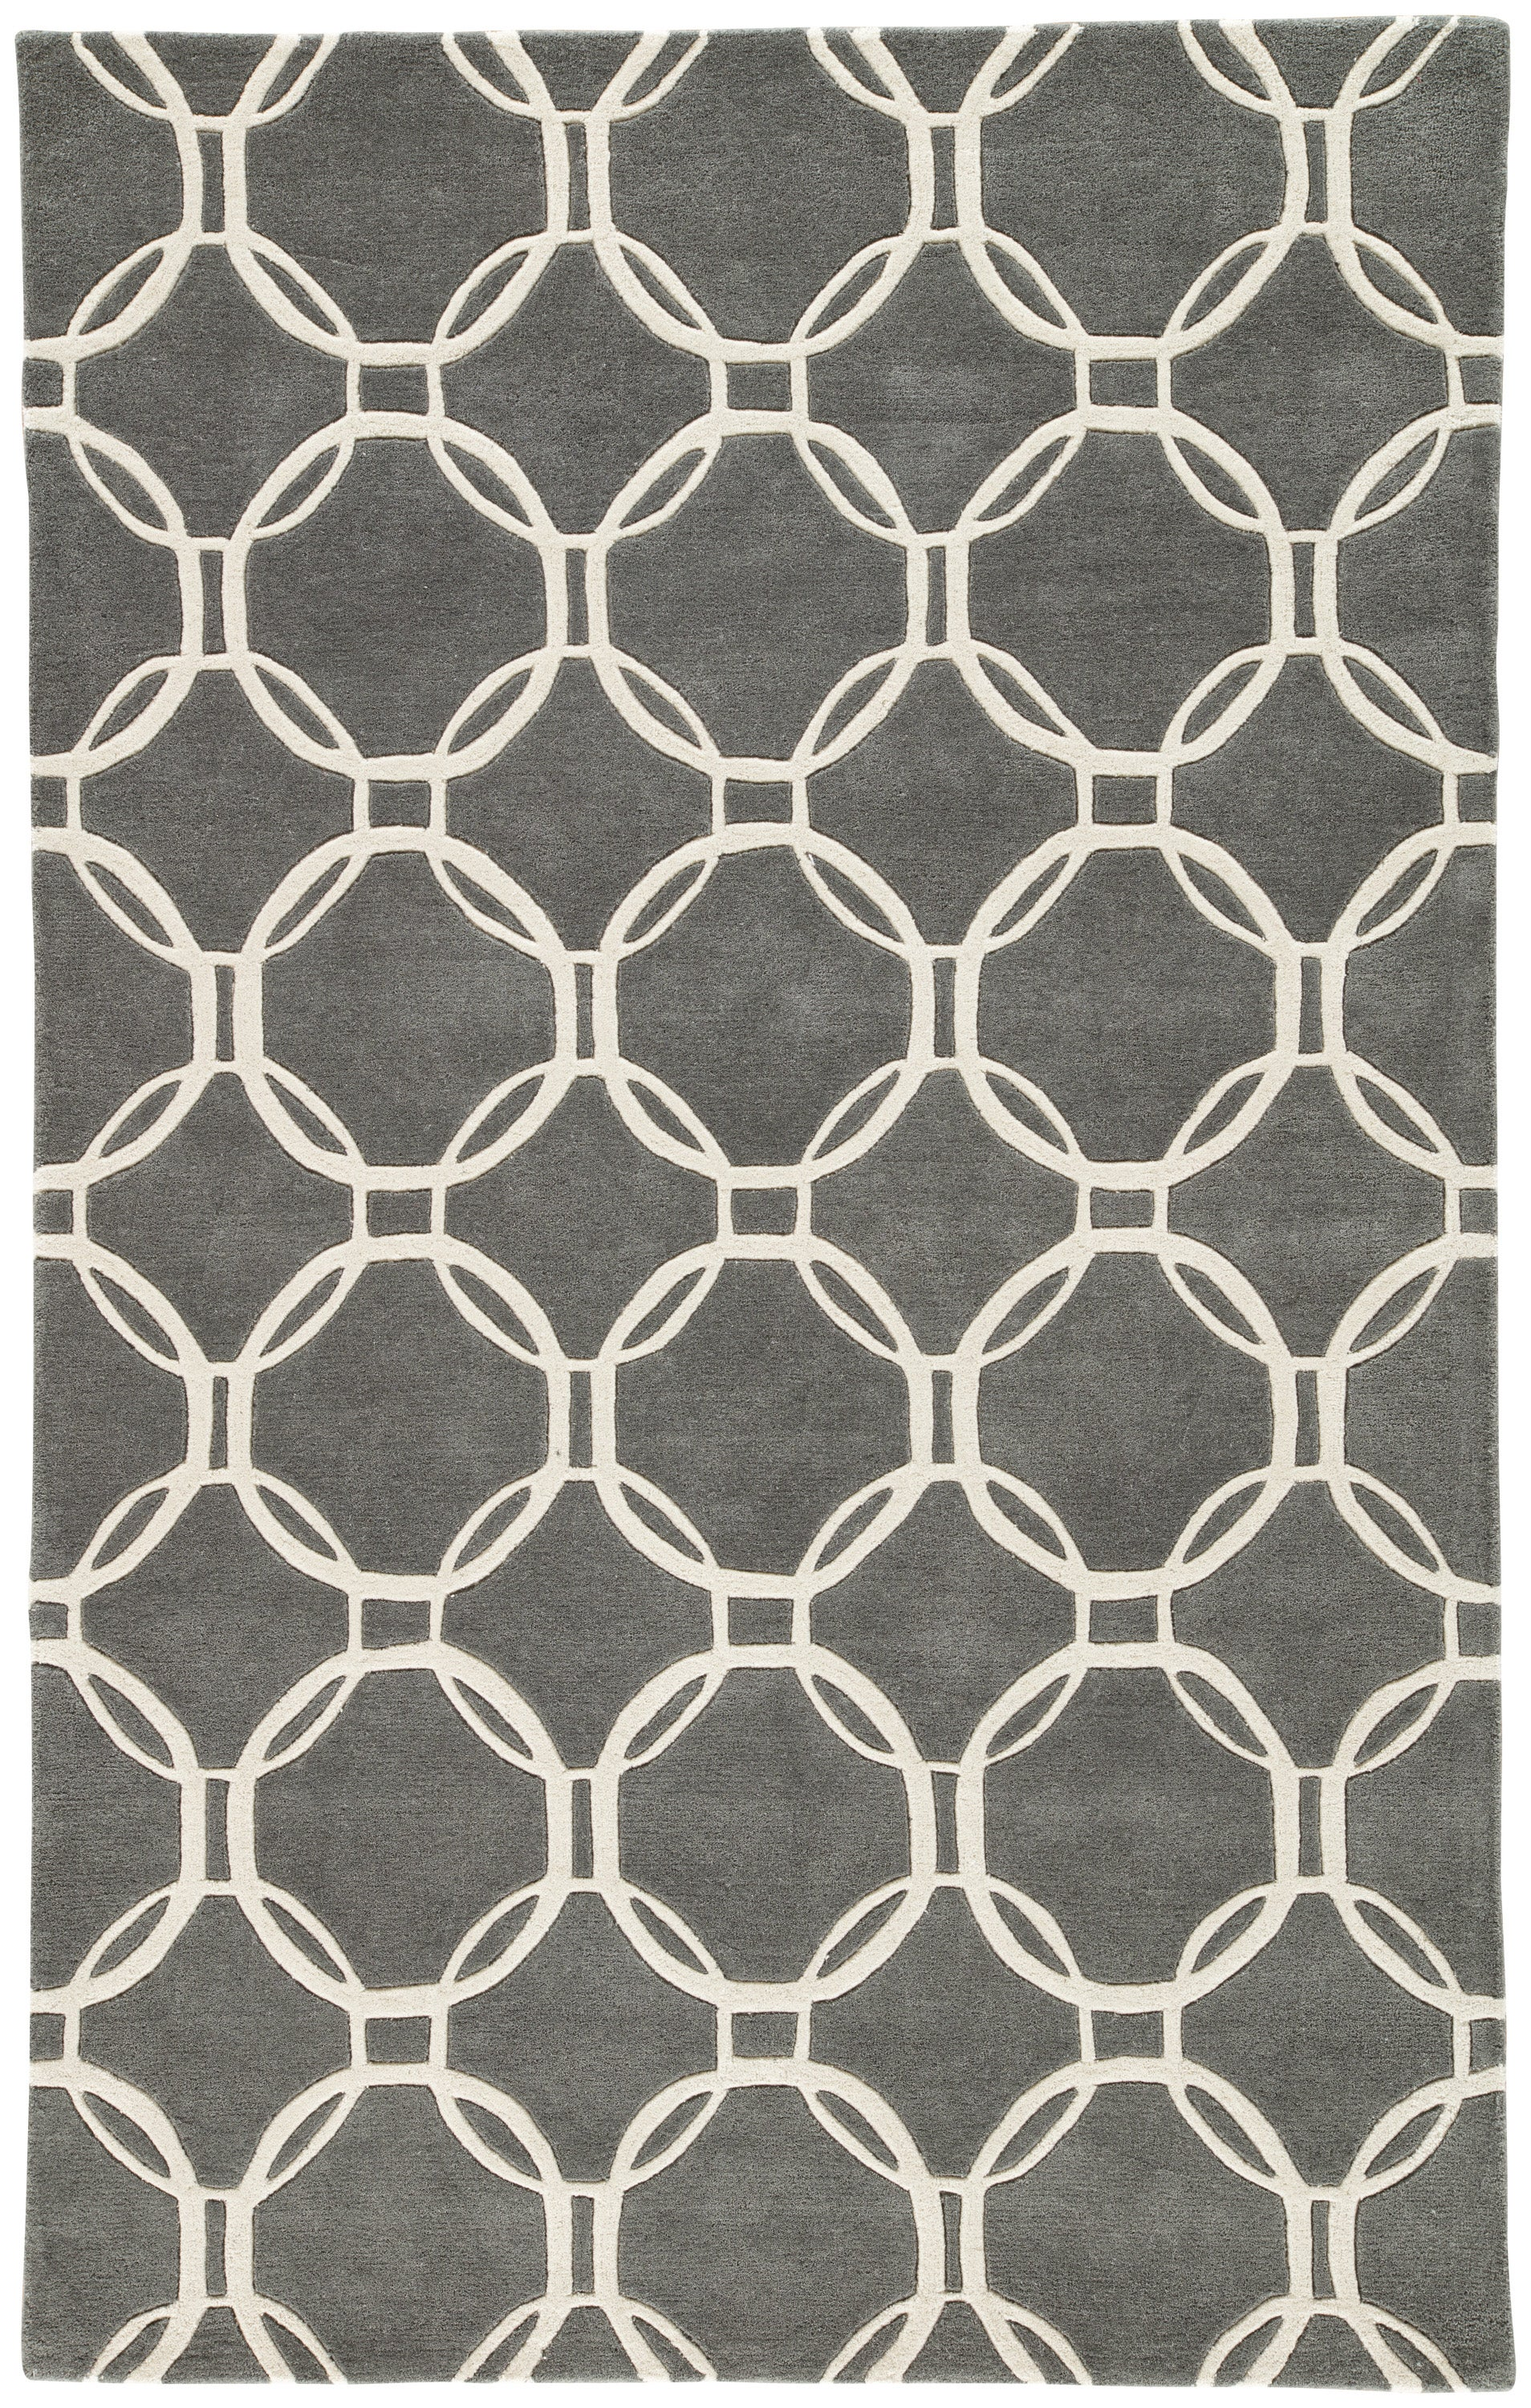 Rectangle, Round, Square 96x136 Gray Trellis Hand Tufted Wool Modern recommended for Bedroom, Bathroom, Dining Room, Office, Hallway, Living Room